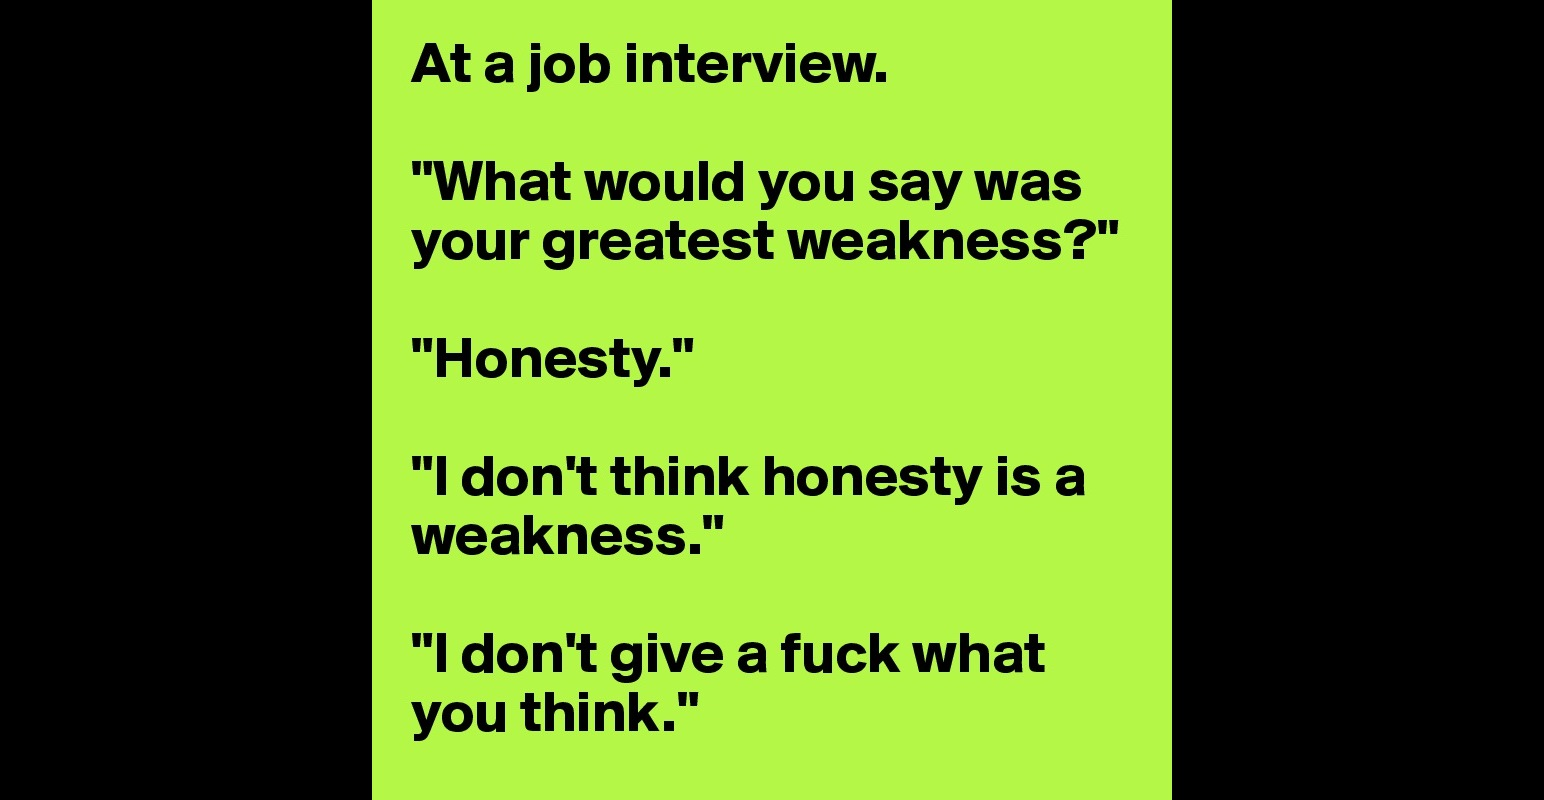 at a job interview what would you say was your greatest weakness at a job interview what would you say was your greatest weakness honesty i don t think honesty is a weakness i don t give a fuck what you think